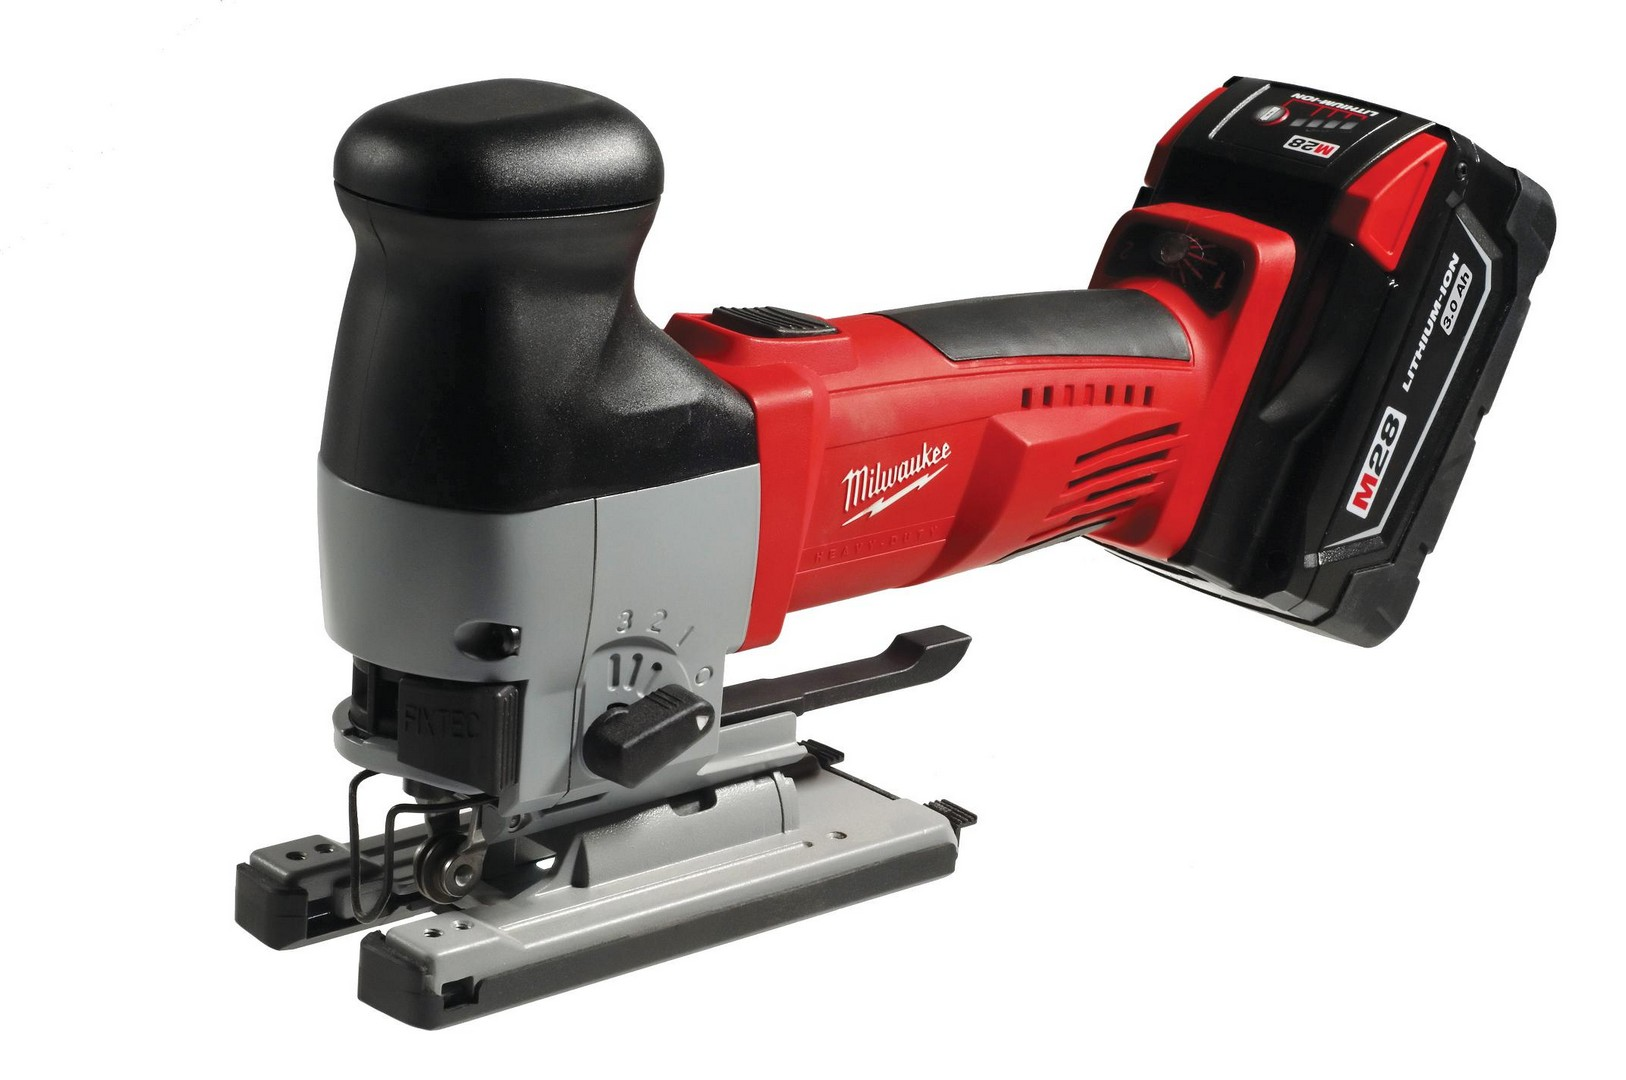 MILWAUKEE HD28JSB-32C HEAVY DUTY CORDLESS JIGSAW